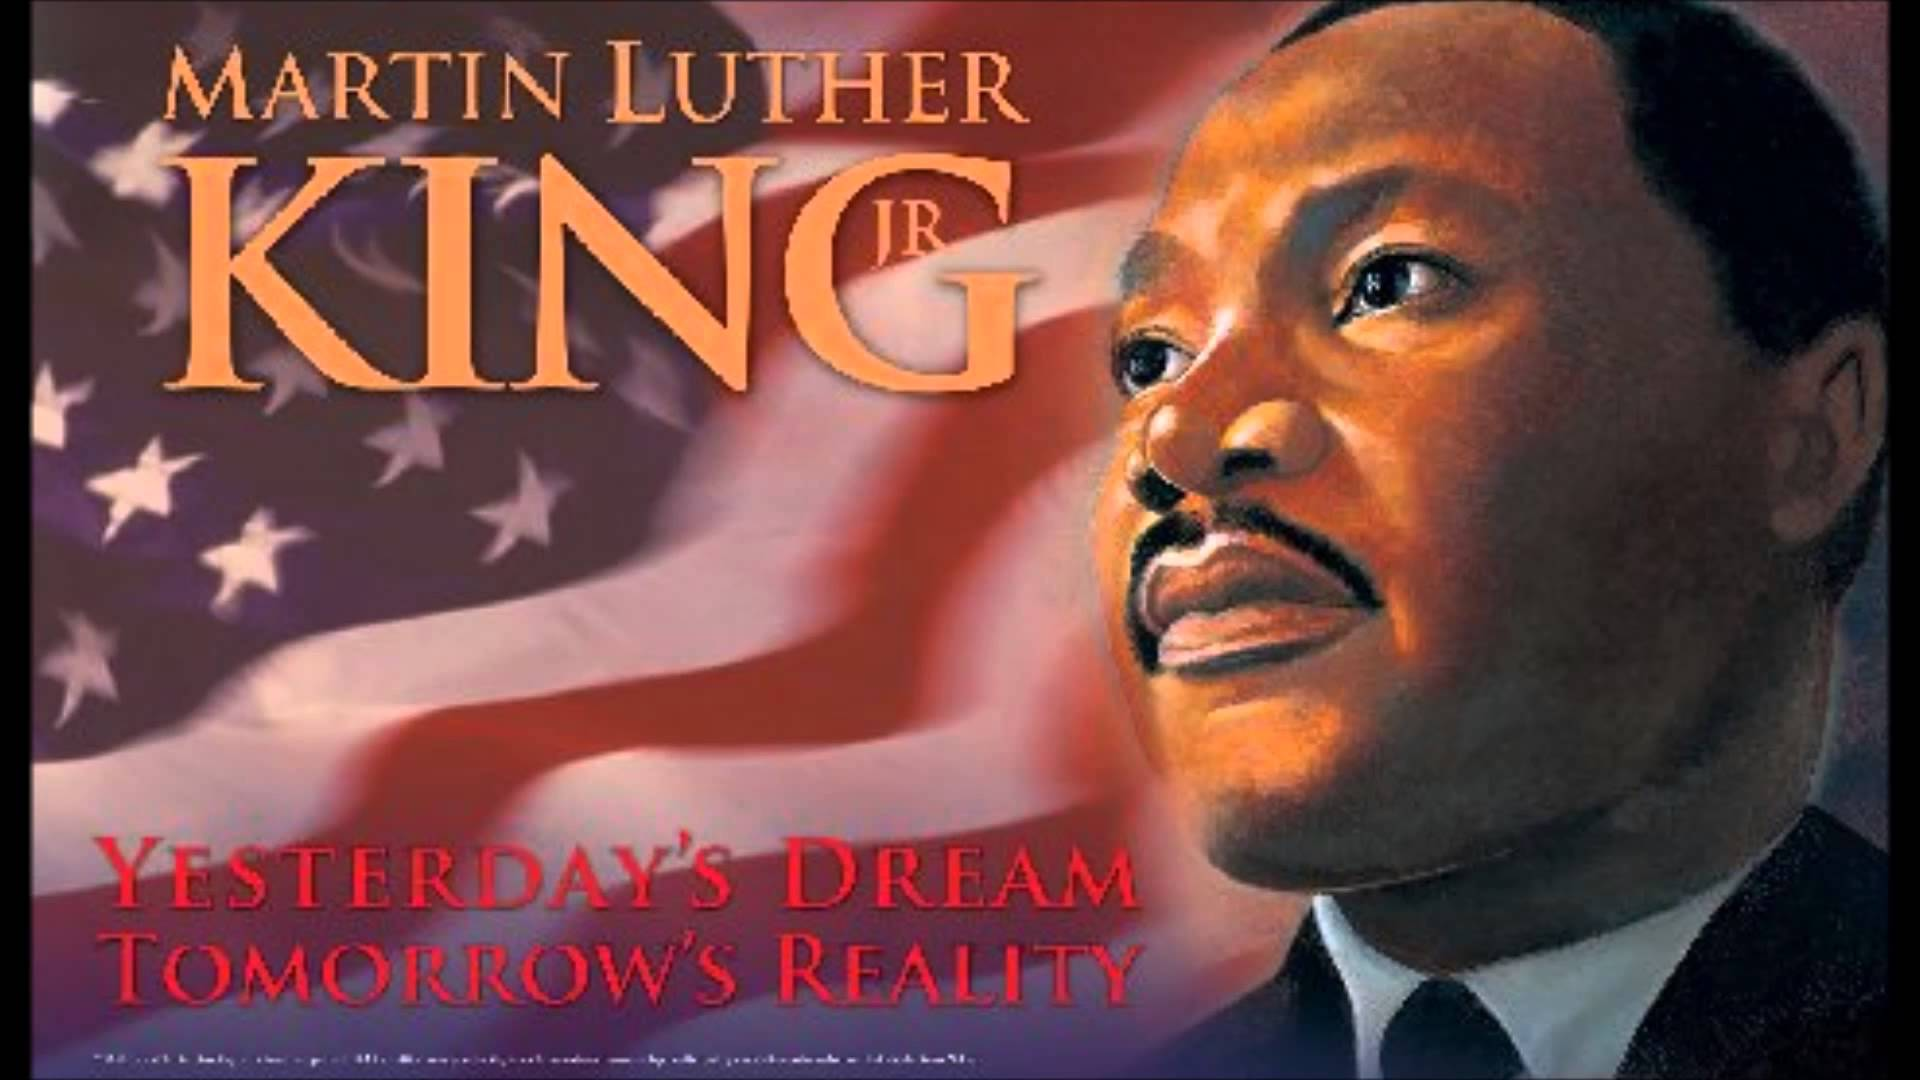 happy birthday martin luther king jr, - YouTube